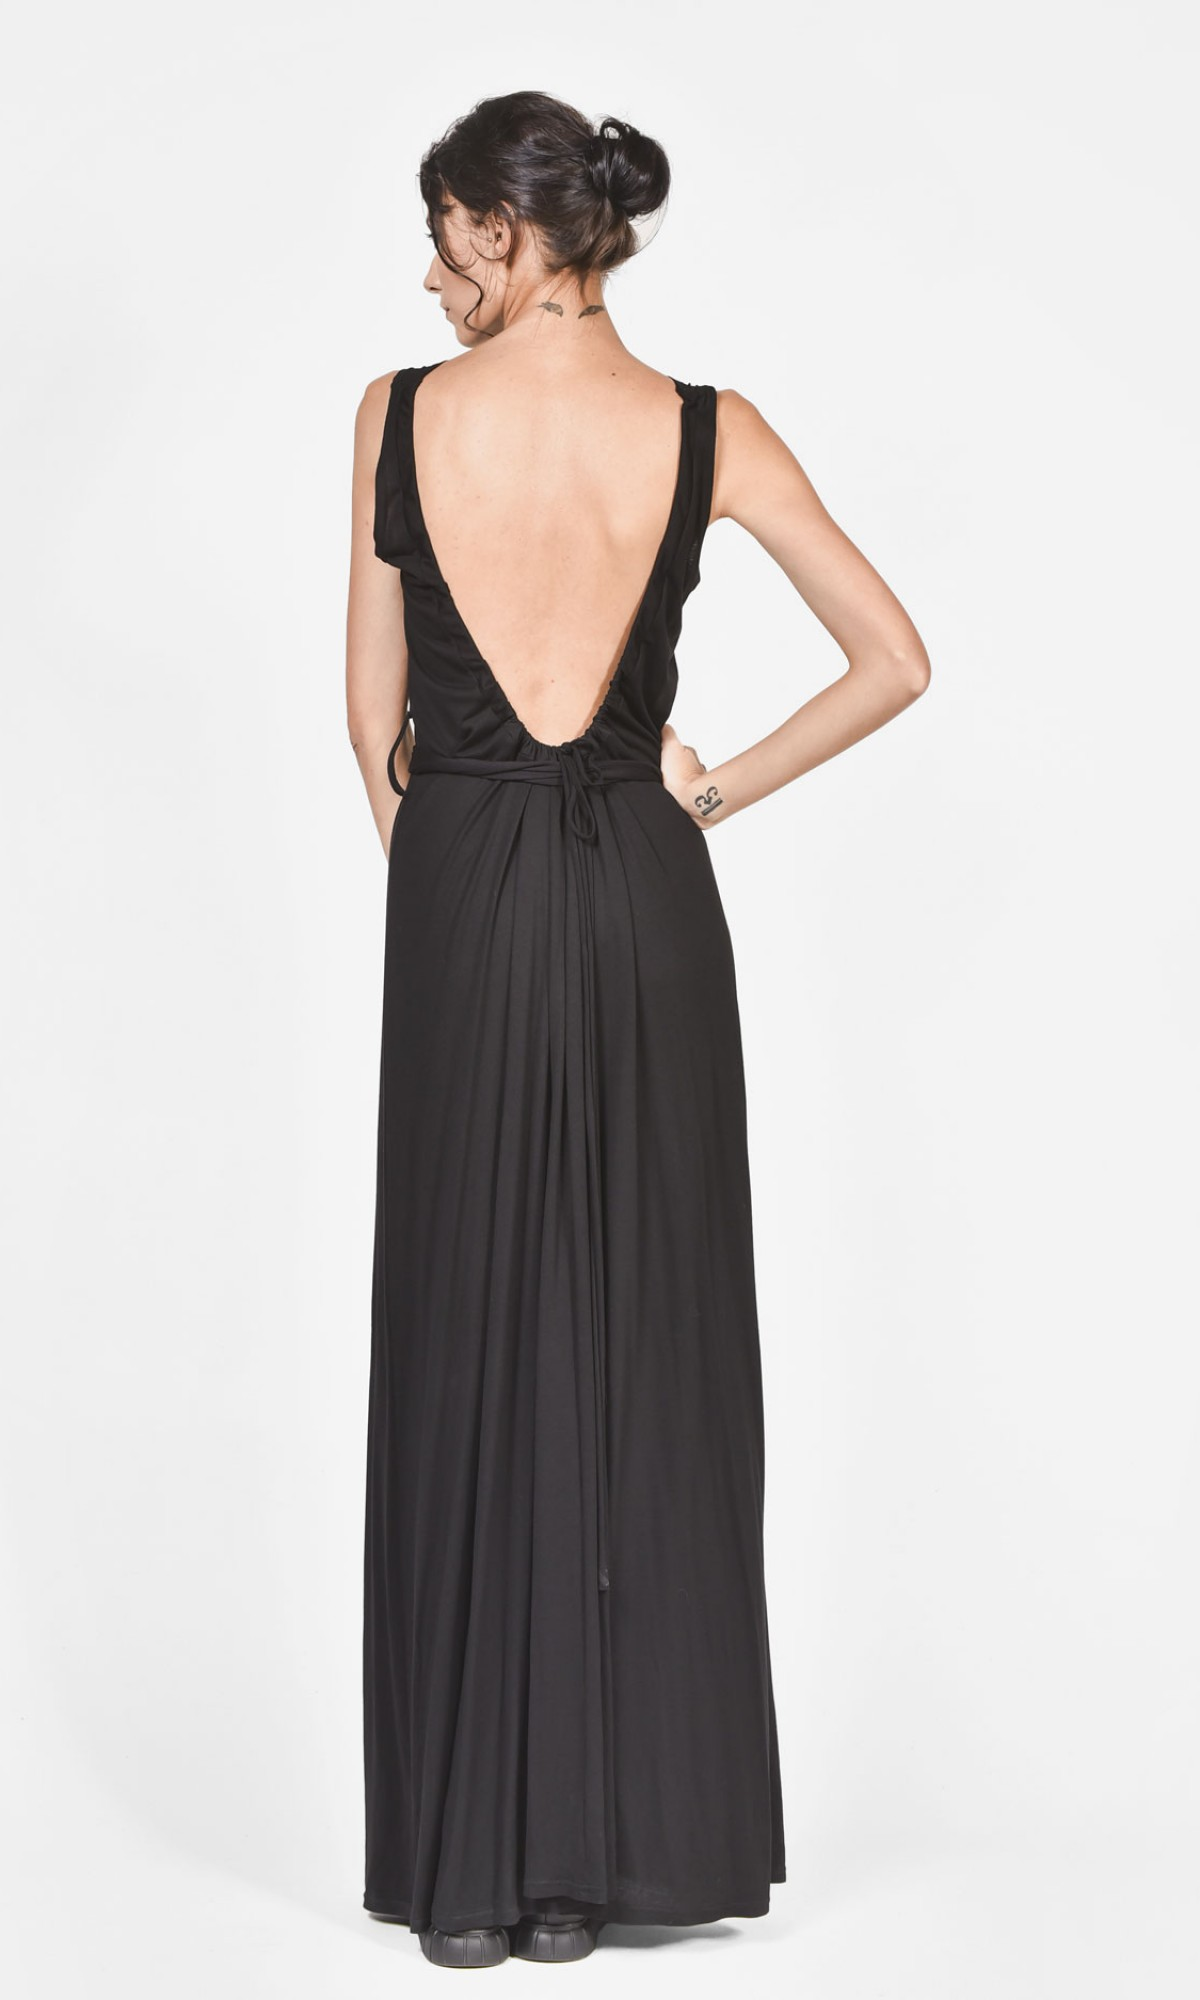 Stunning Bare back dress A90035